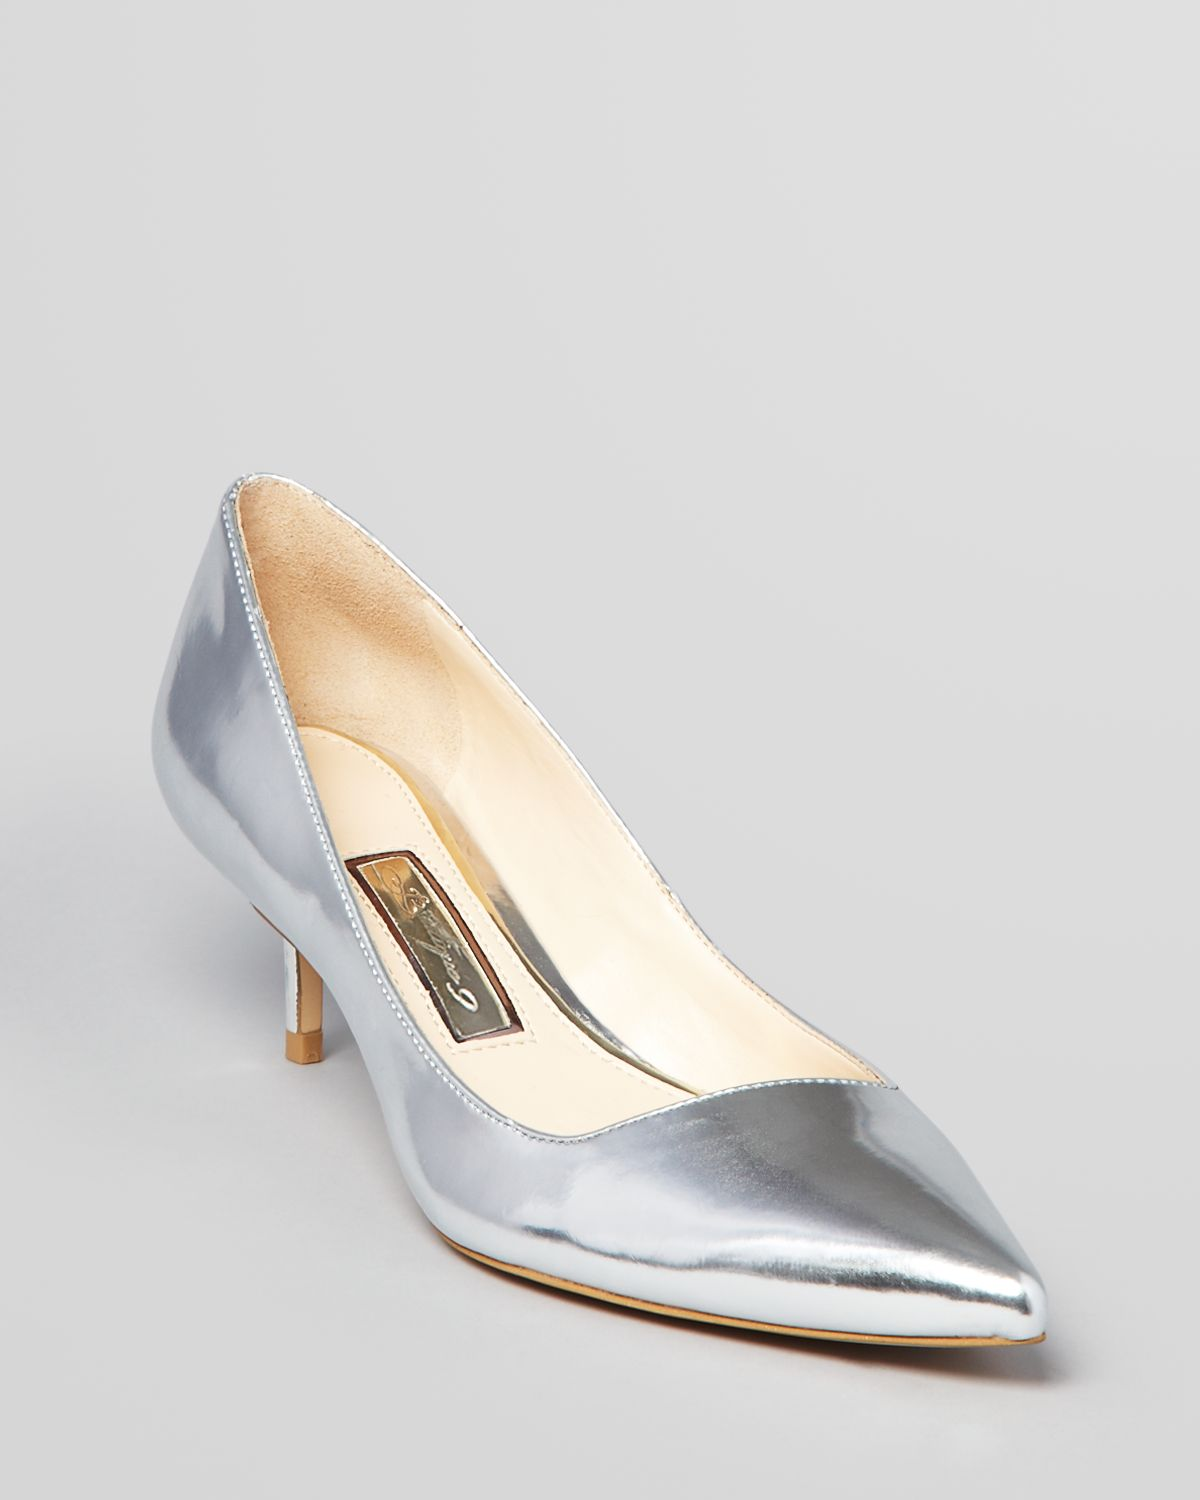 Boutique 9 Pointed Toe Pumps Sophina Kitten Heel in Metallic | Lyst